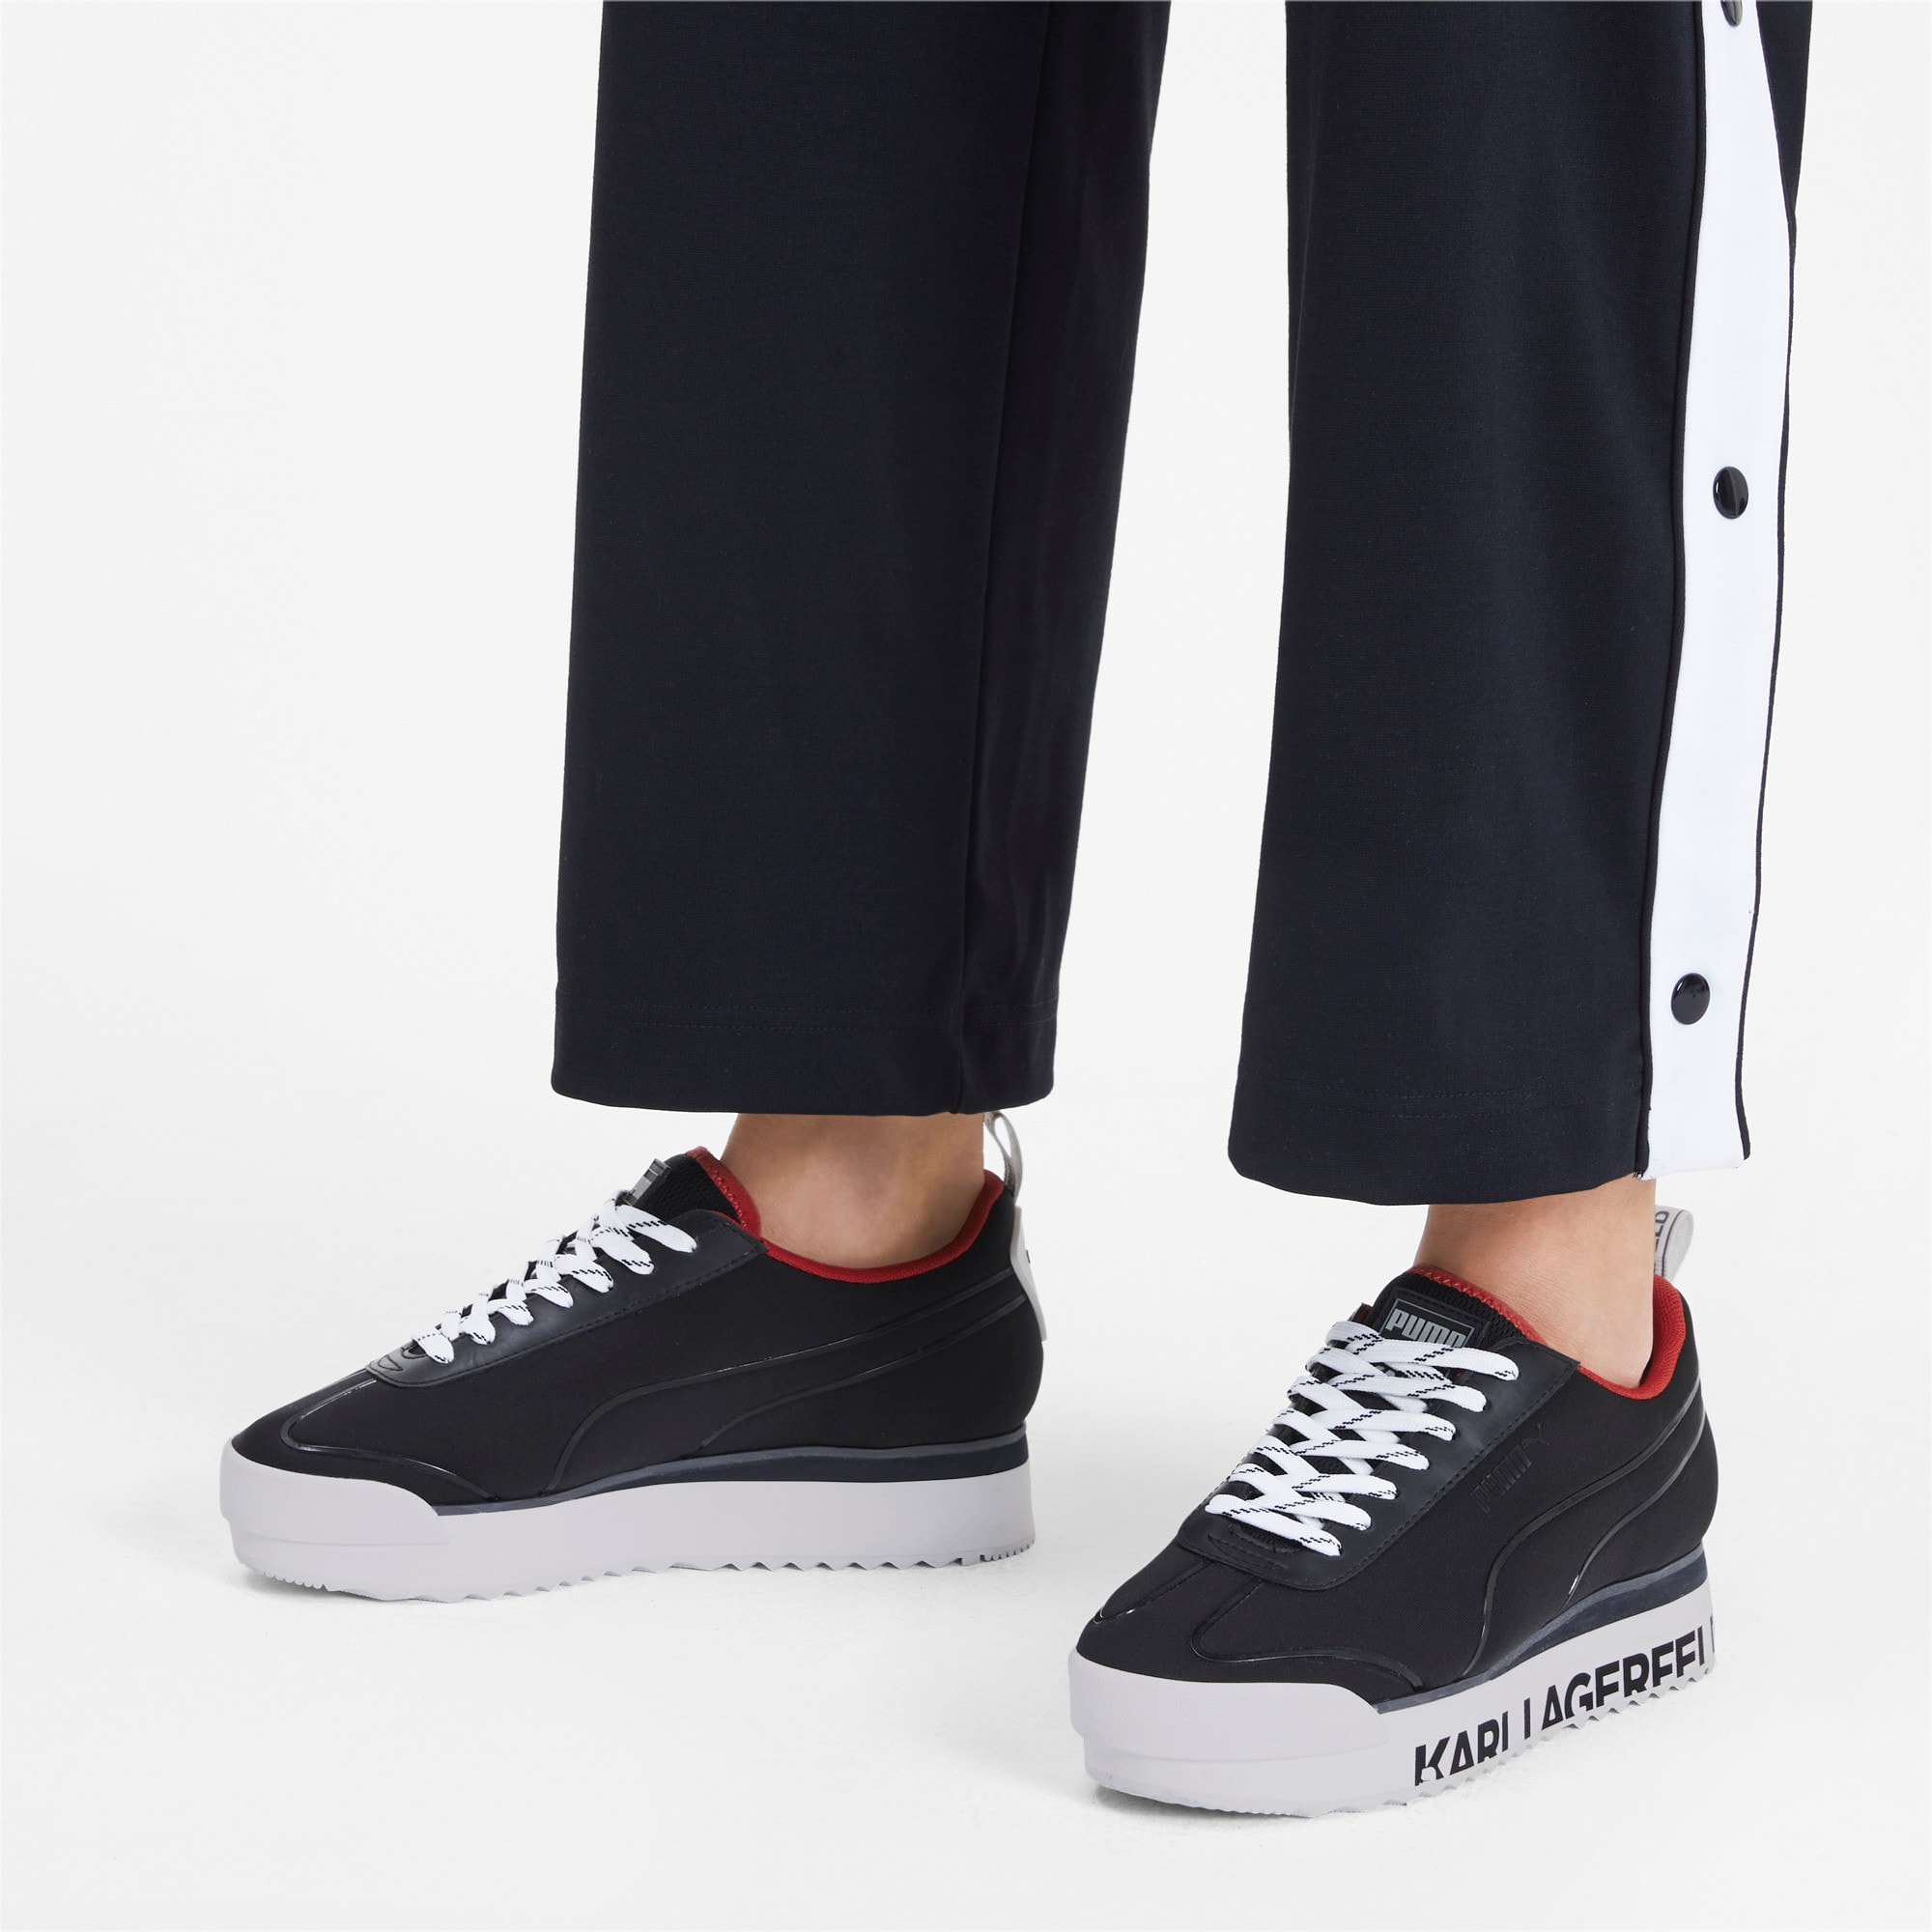 Thumbnail 2 of PUMA x KARL LAGERFELD Roma Amor Women's Trainers, Puma Black-Puma Black, medium